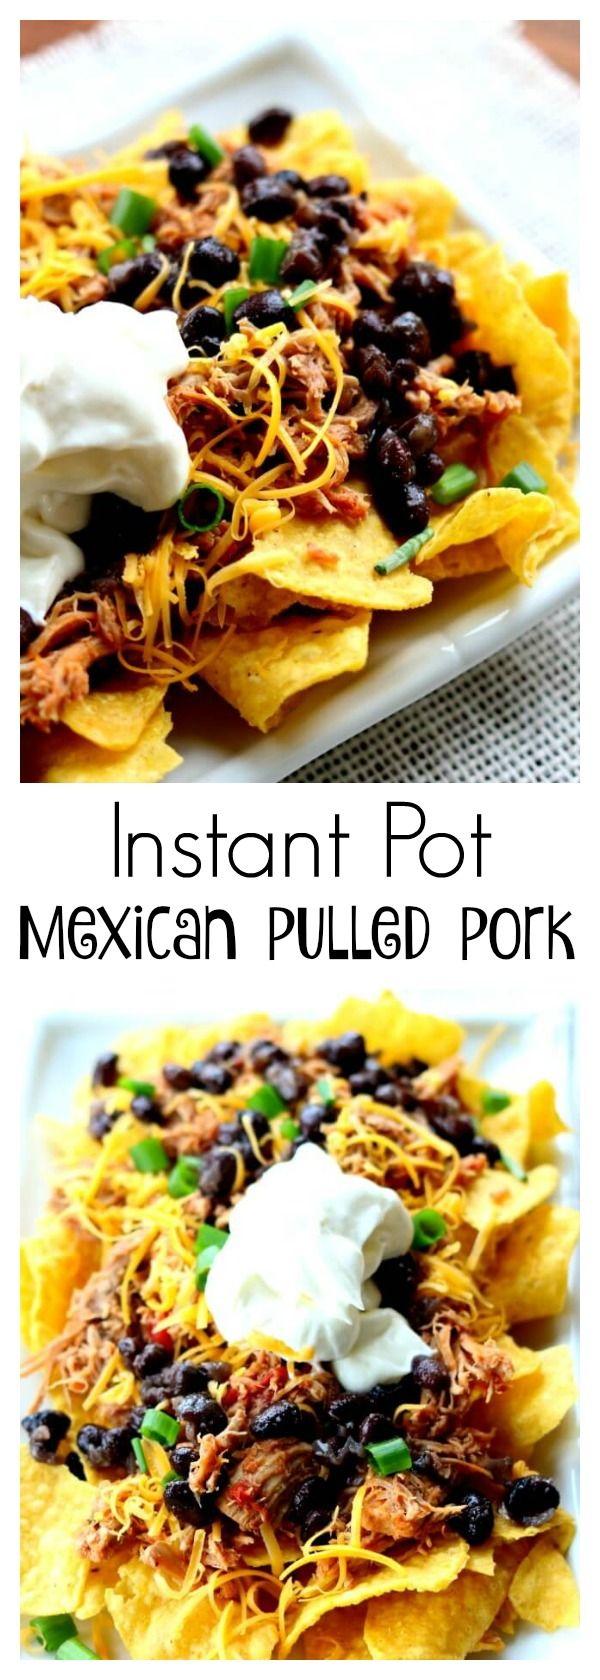 Instant Pot Mexican Pulled Pork–fall apart tender pork is cooked in your pressure cooker and then a few extra ingredients are added to give the meat a southwestern flare. This pork is perfect for tacos, salads, nachos and burritos!